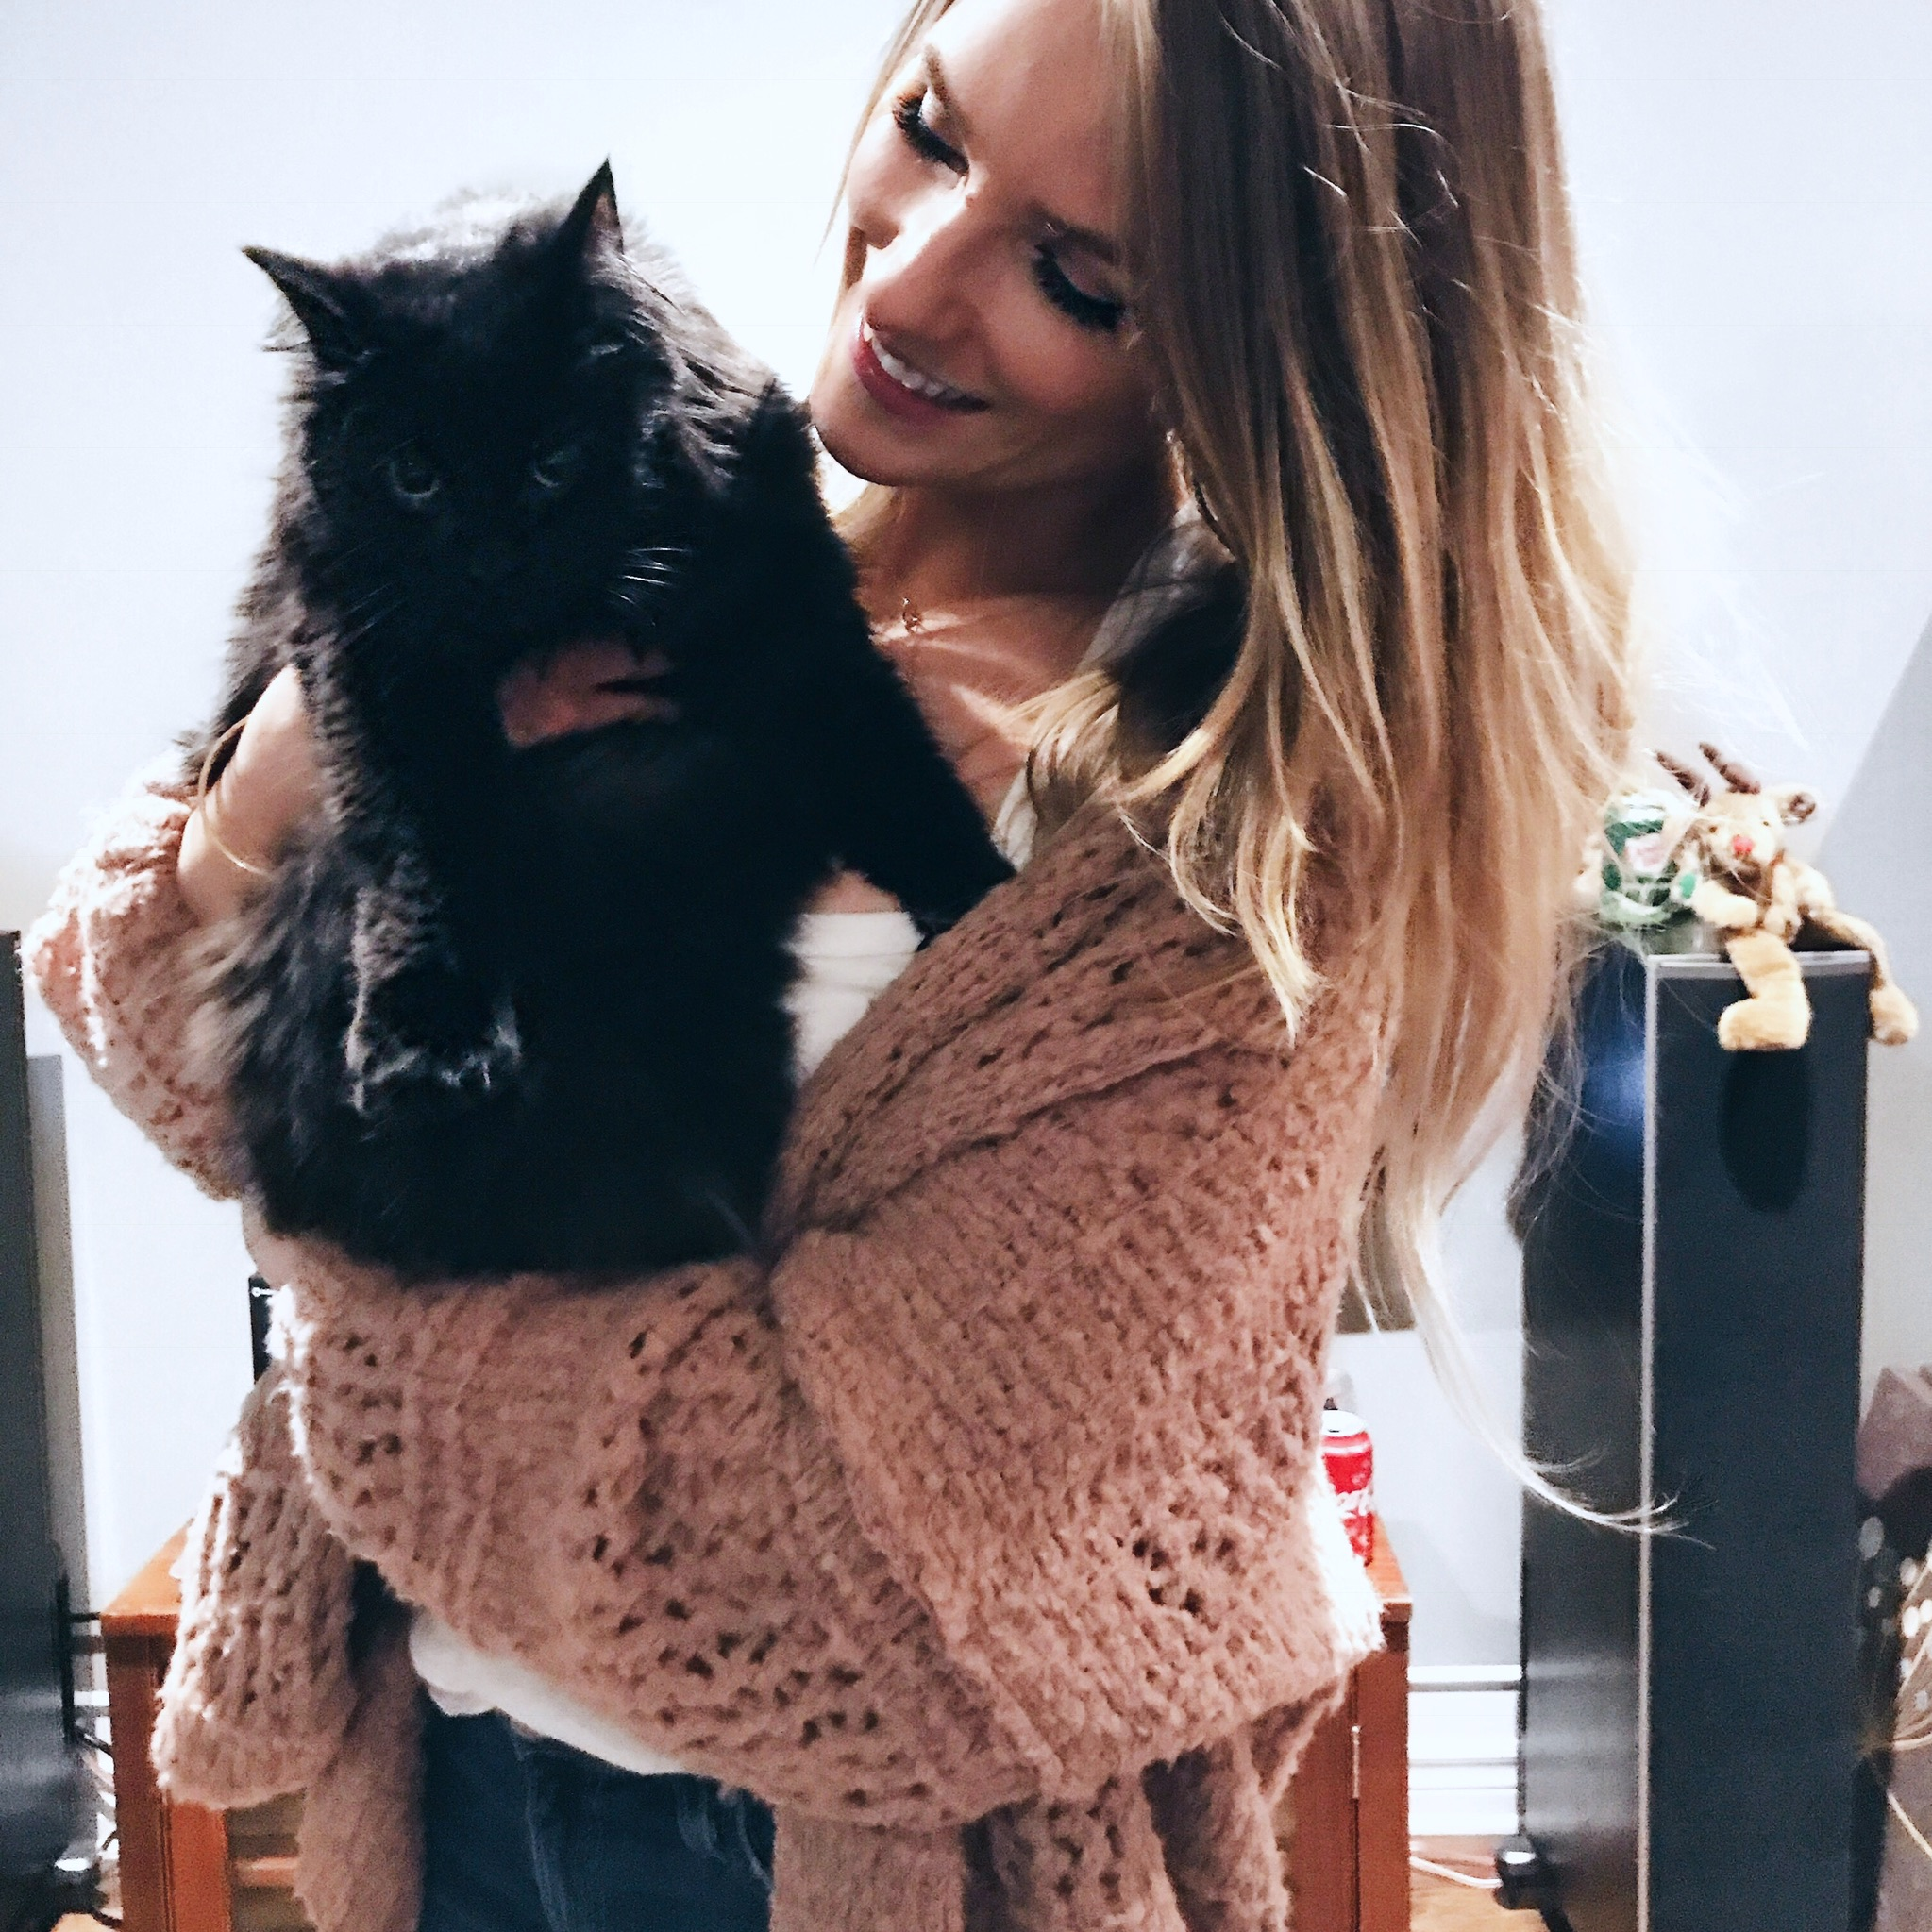 ottawa blogger life with aco, free people Saturday cardigan